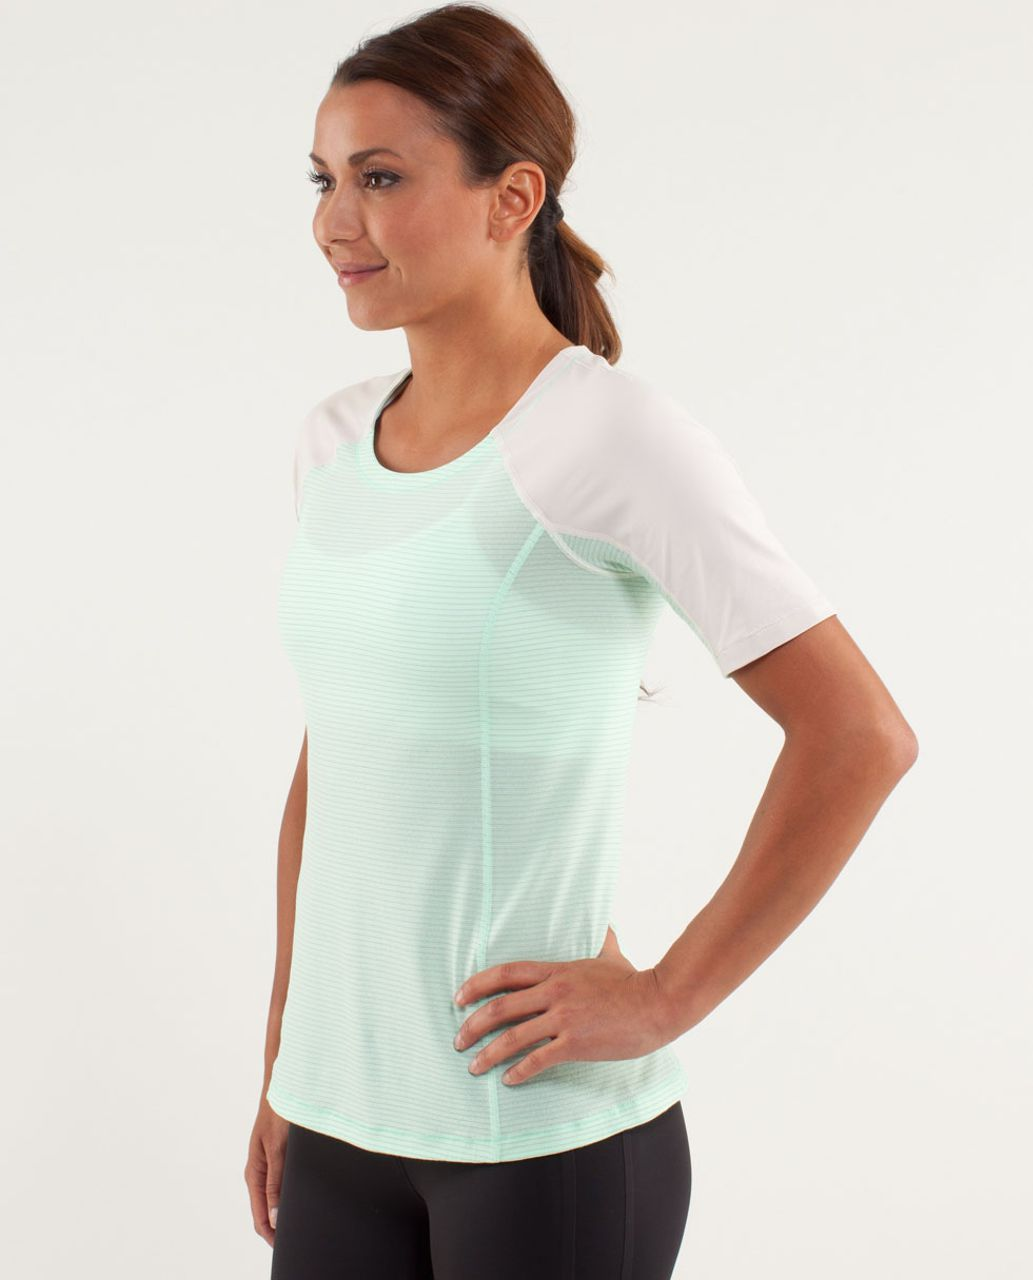 Lululemon Run:  Turn It Up Tee - Fresh Teal / Dune / Wagon Stripe Fresh Teal